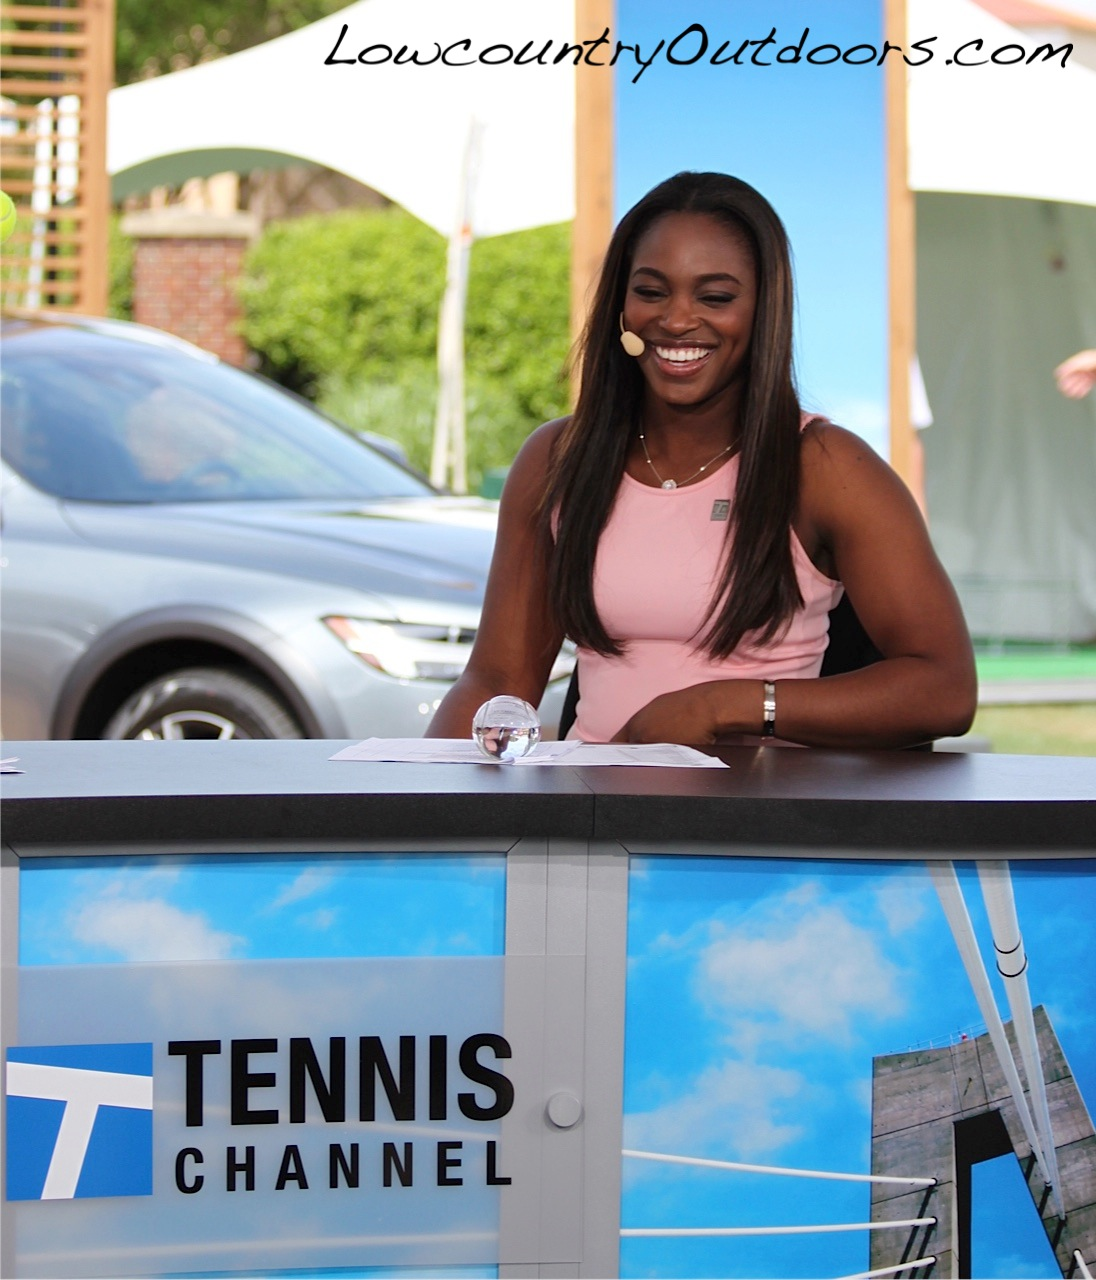 Lowcountry Outdoors 2017 Volvo Car Open Tennis Channel Takeover